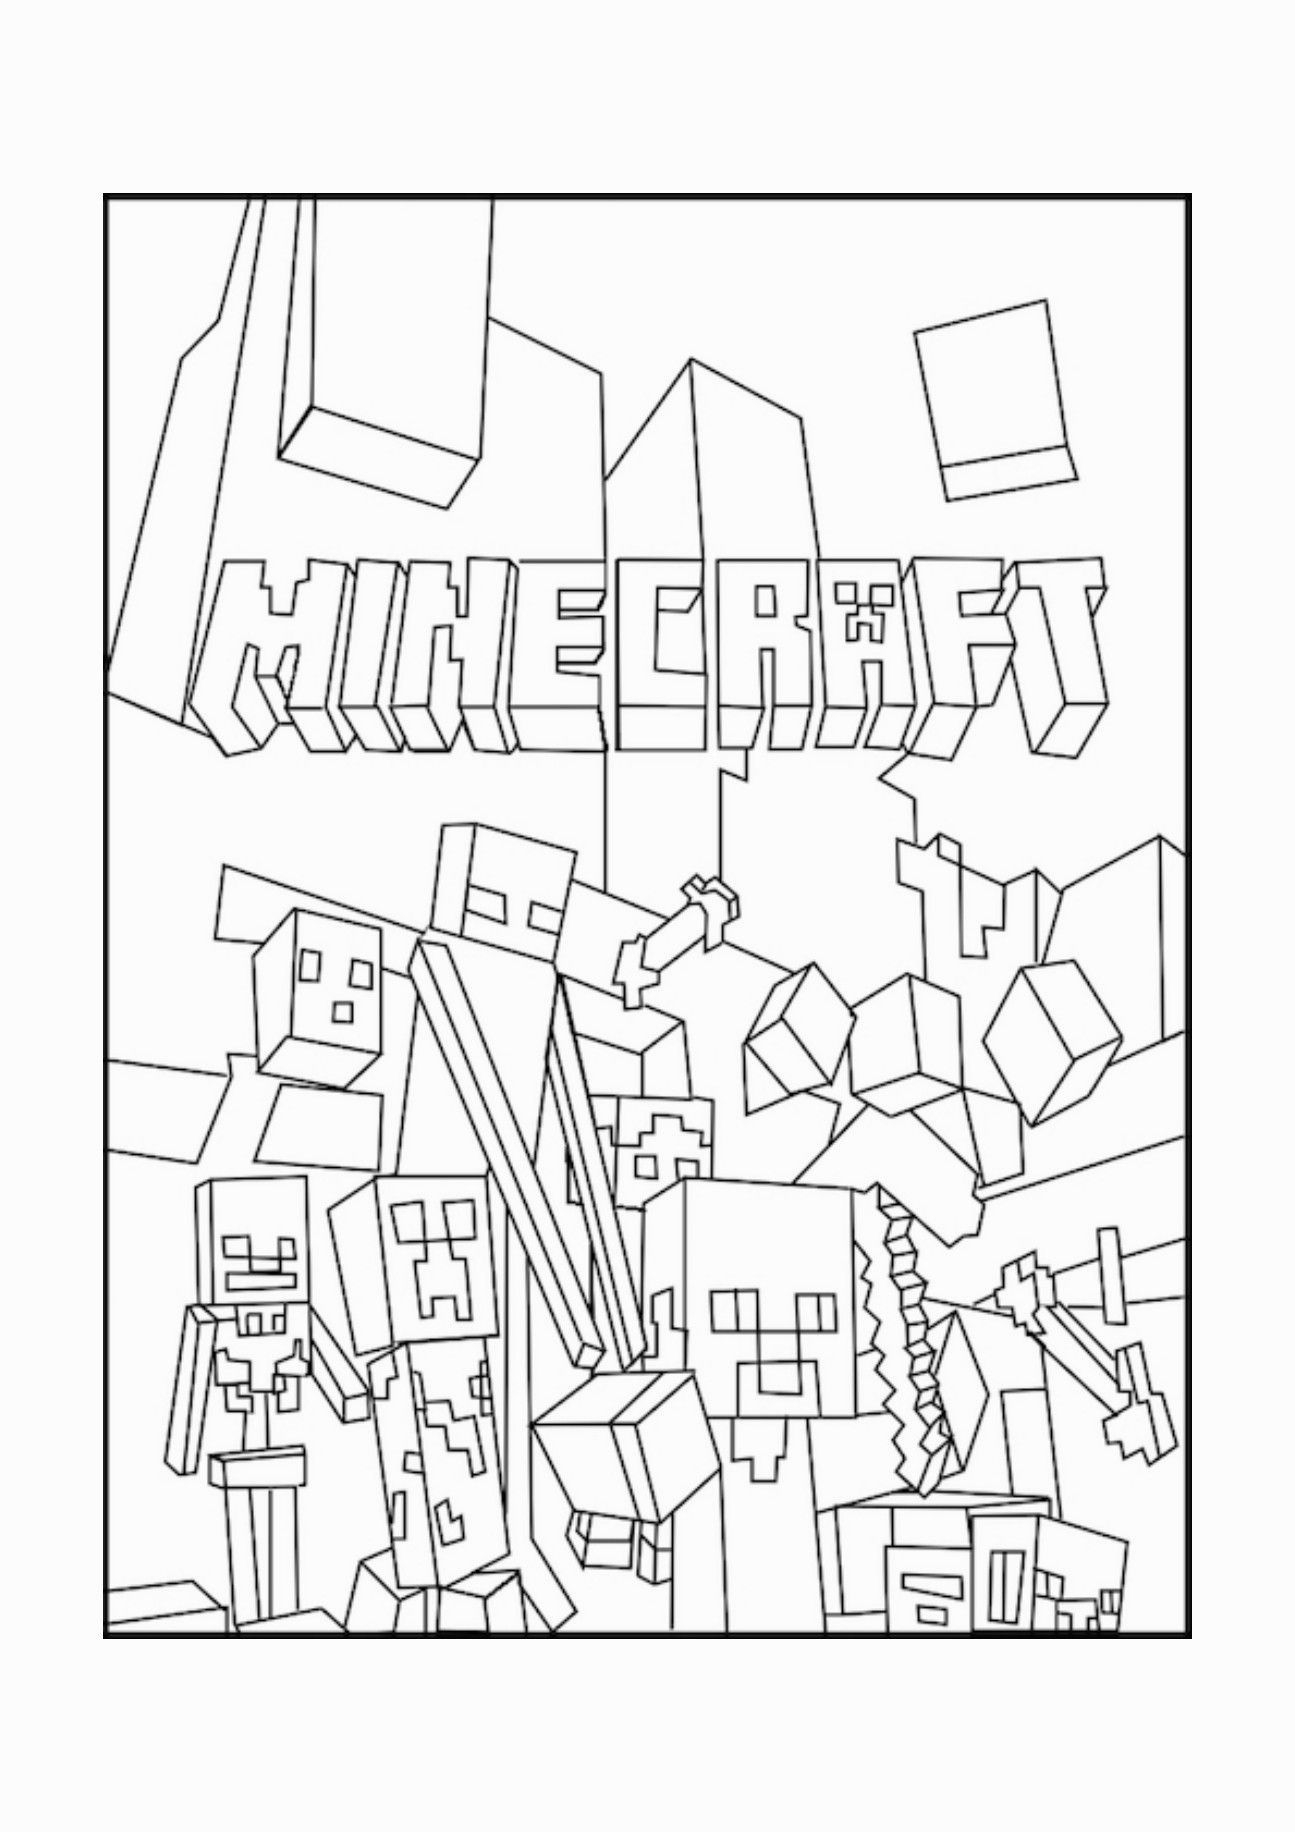 Minecraft Princess Coloring Pages From The Thousand Pictures On The Internet Concerning M Lego Coloring Pages Minecraft Coloring Pages Cartoon Coloring Pages [ 1832 x 1295 Pixel ]